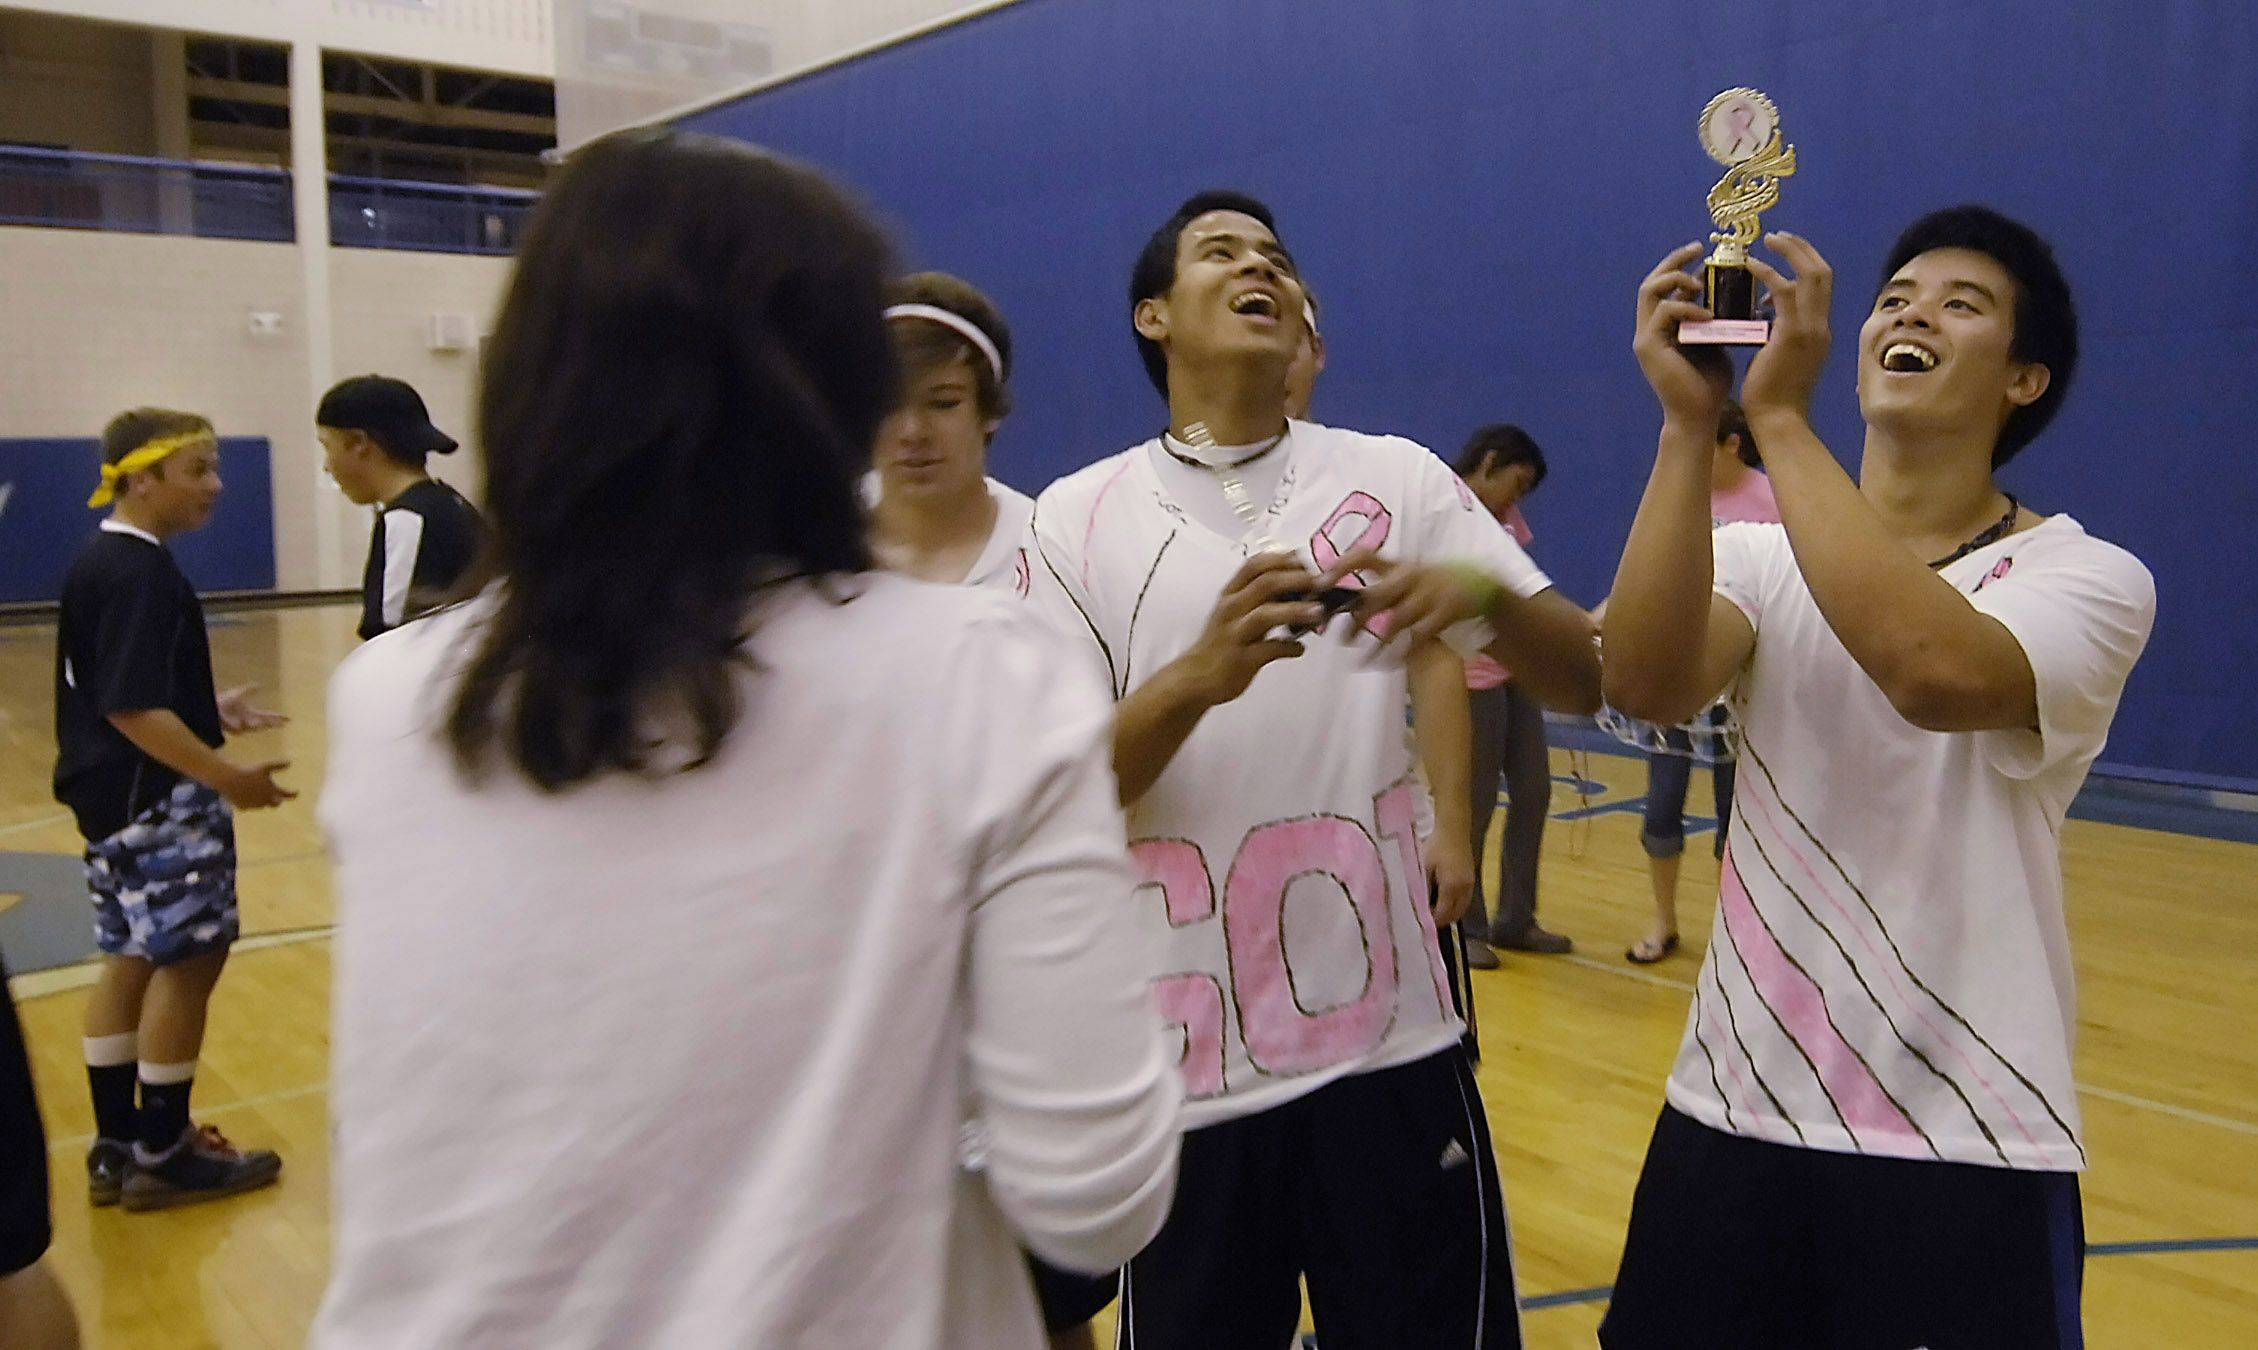 Dennis Leonardo and Andy Phorasavong, of Team Sausage Fest, rejoice in winning the charity dodgeball tournament as opponent Mike Henriksen and a teammate of Team Drogball talk in the background.